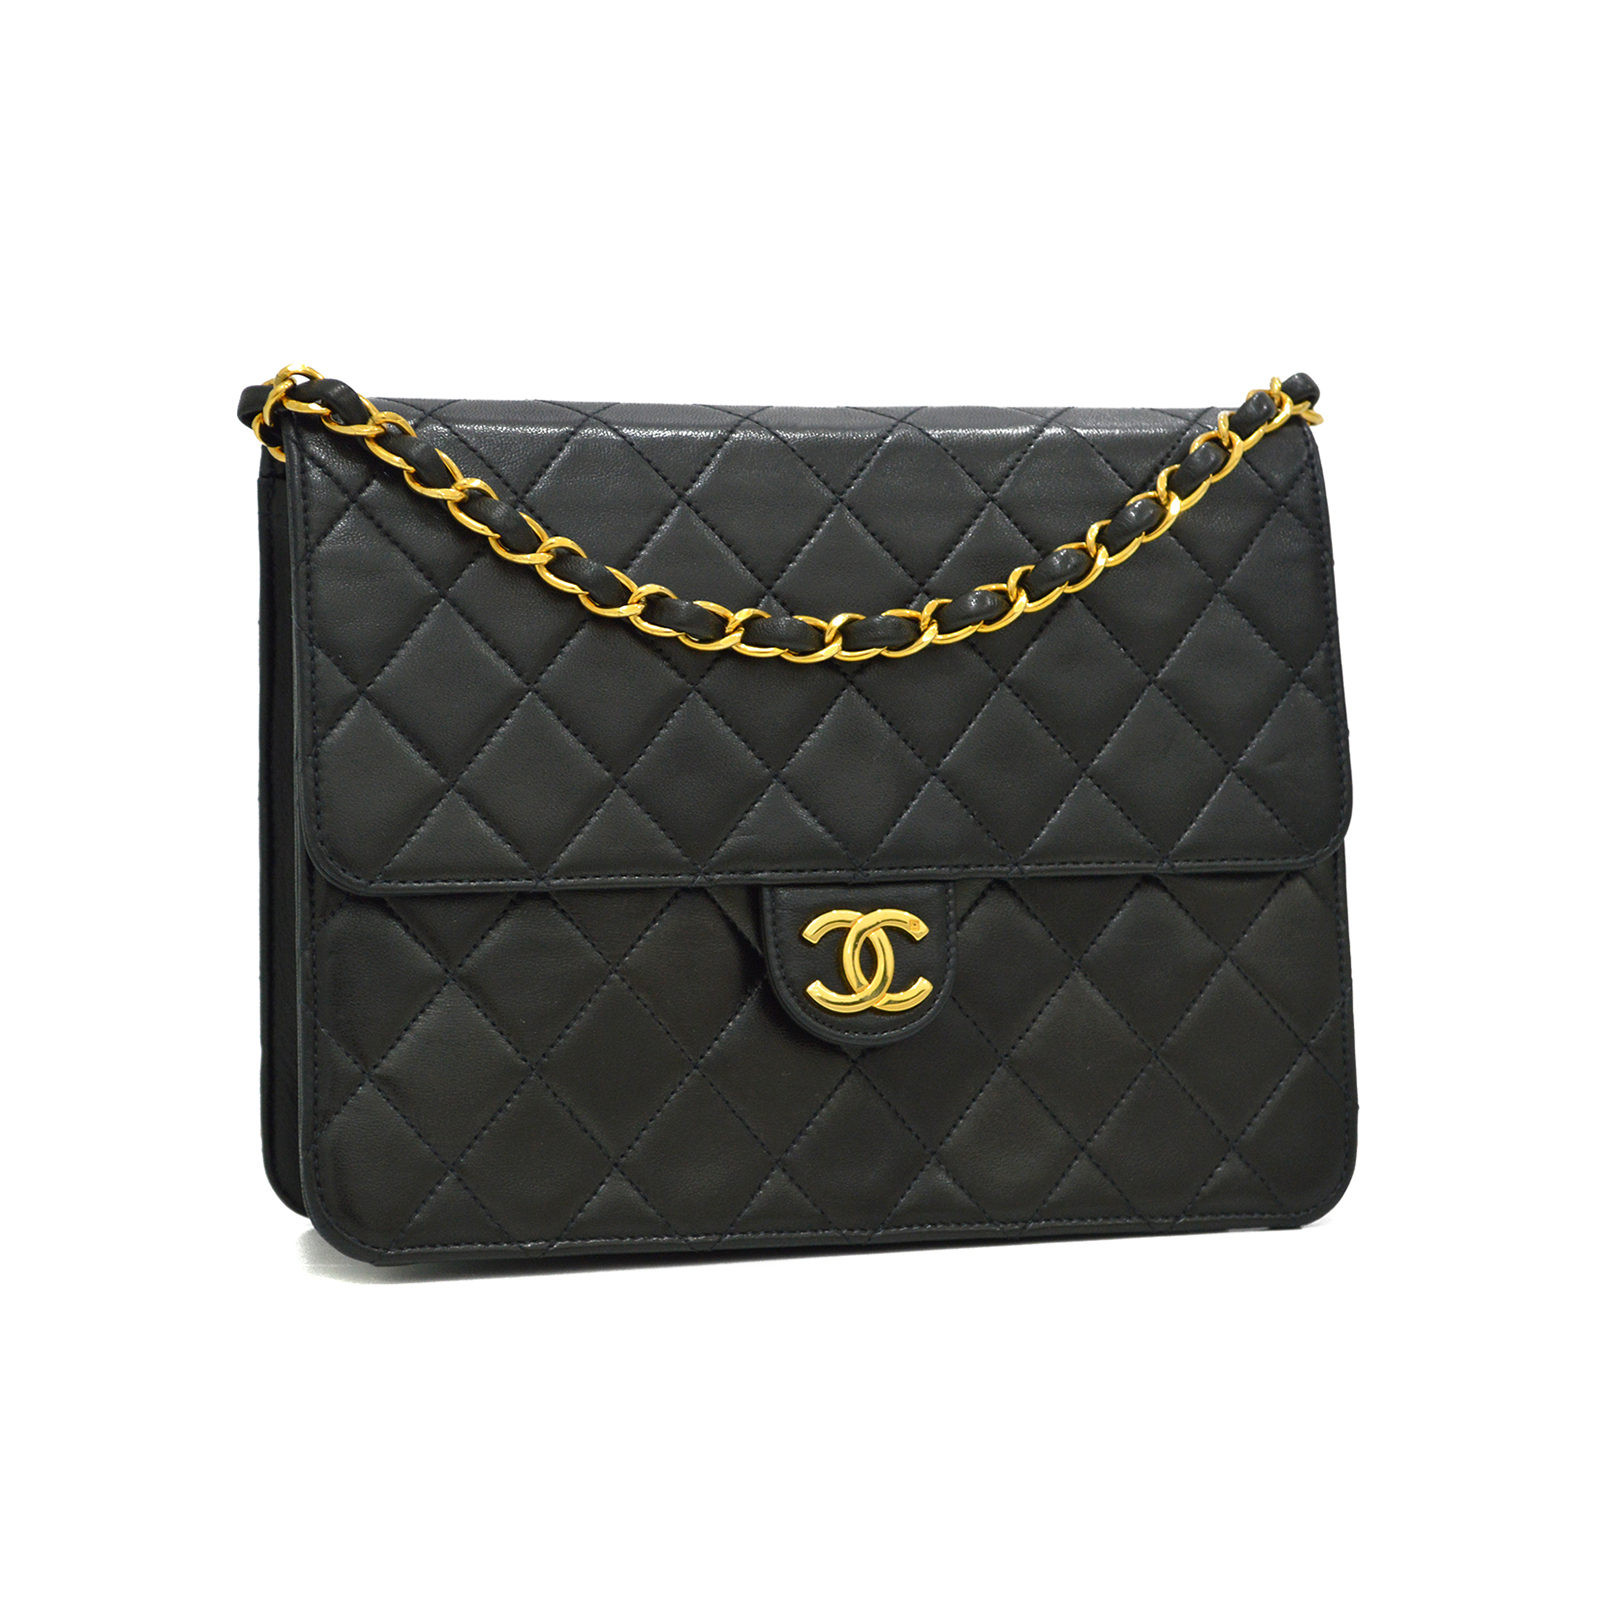 2d6d68b99e18 Chanel Classic 2 Way Flap Bag – SASA AVENUE